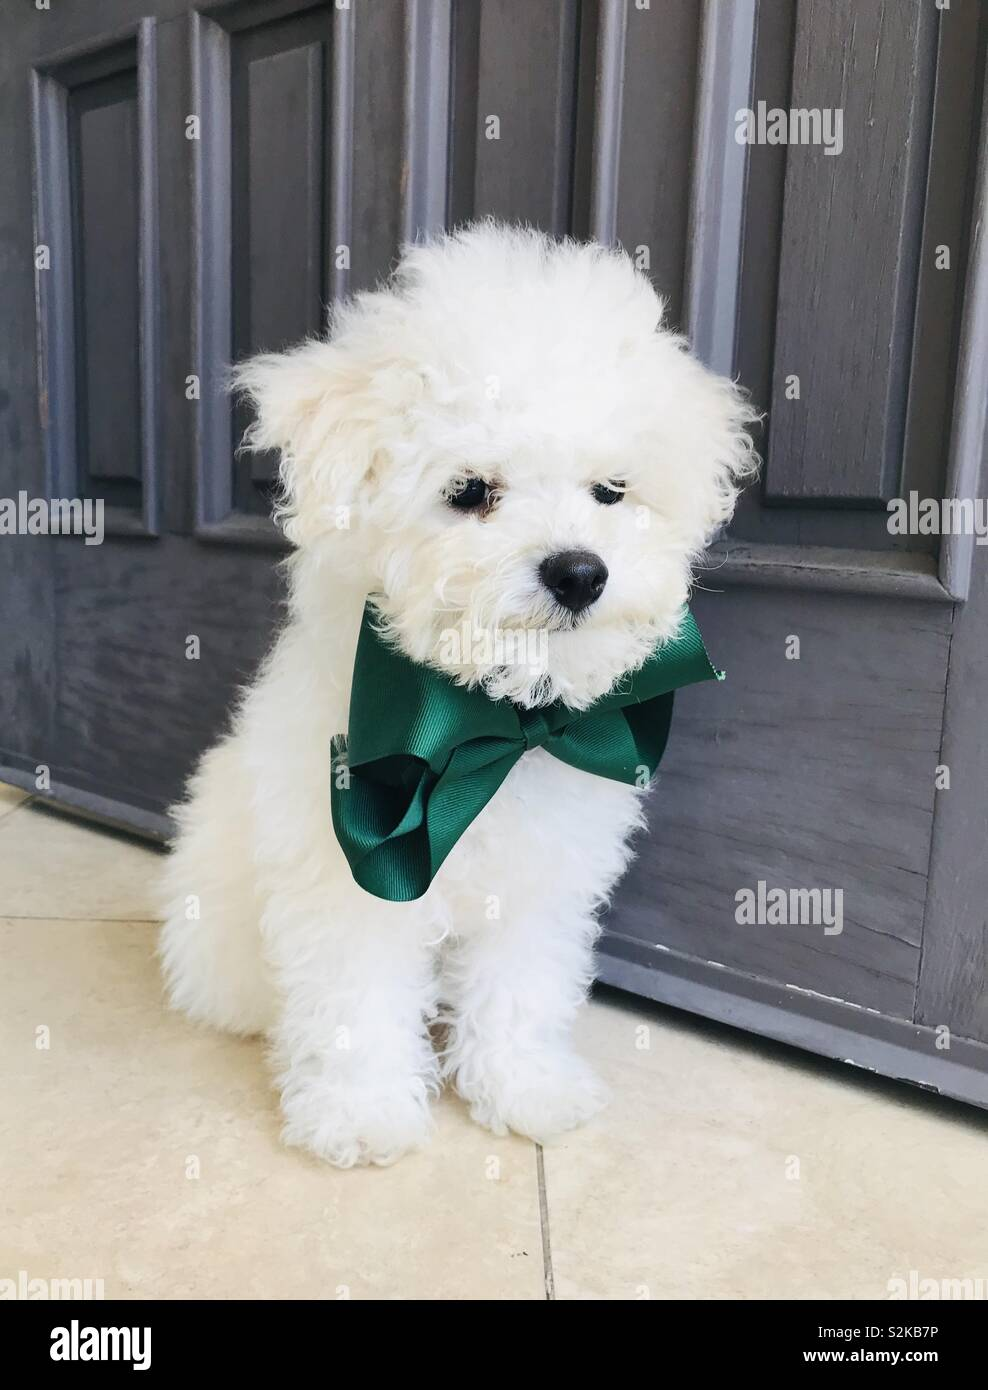 Holiday Boy wearing his green bow tie and furry white coat. Bichon puppy portrait. - Stock Image